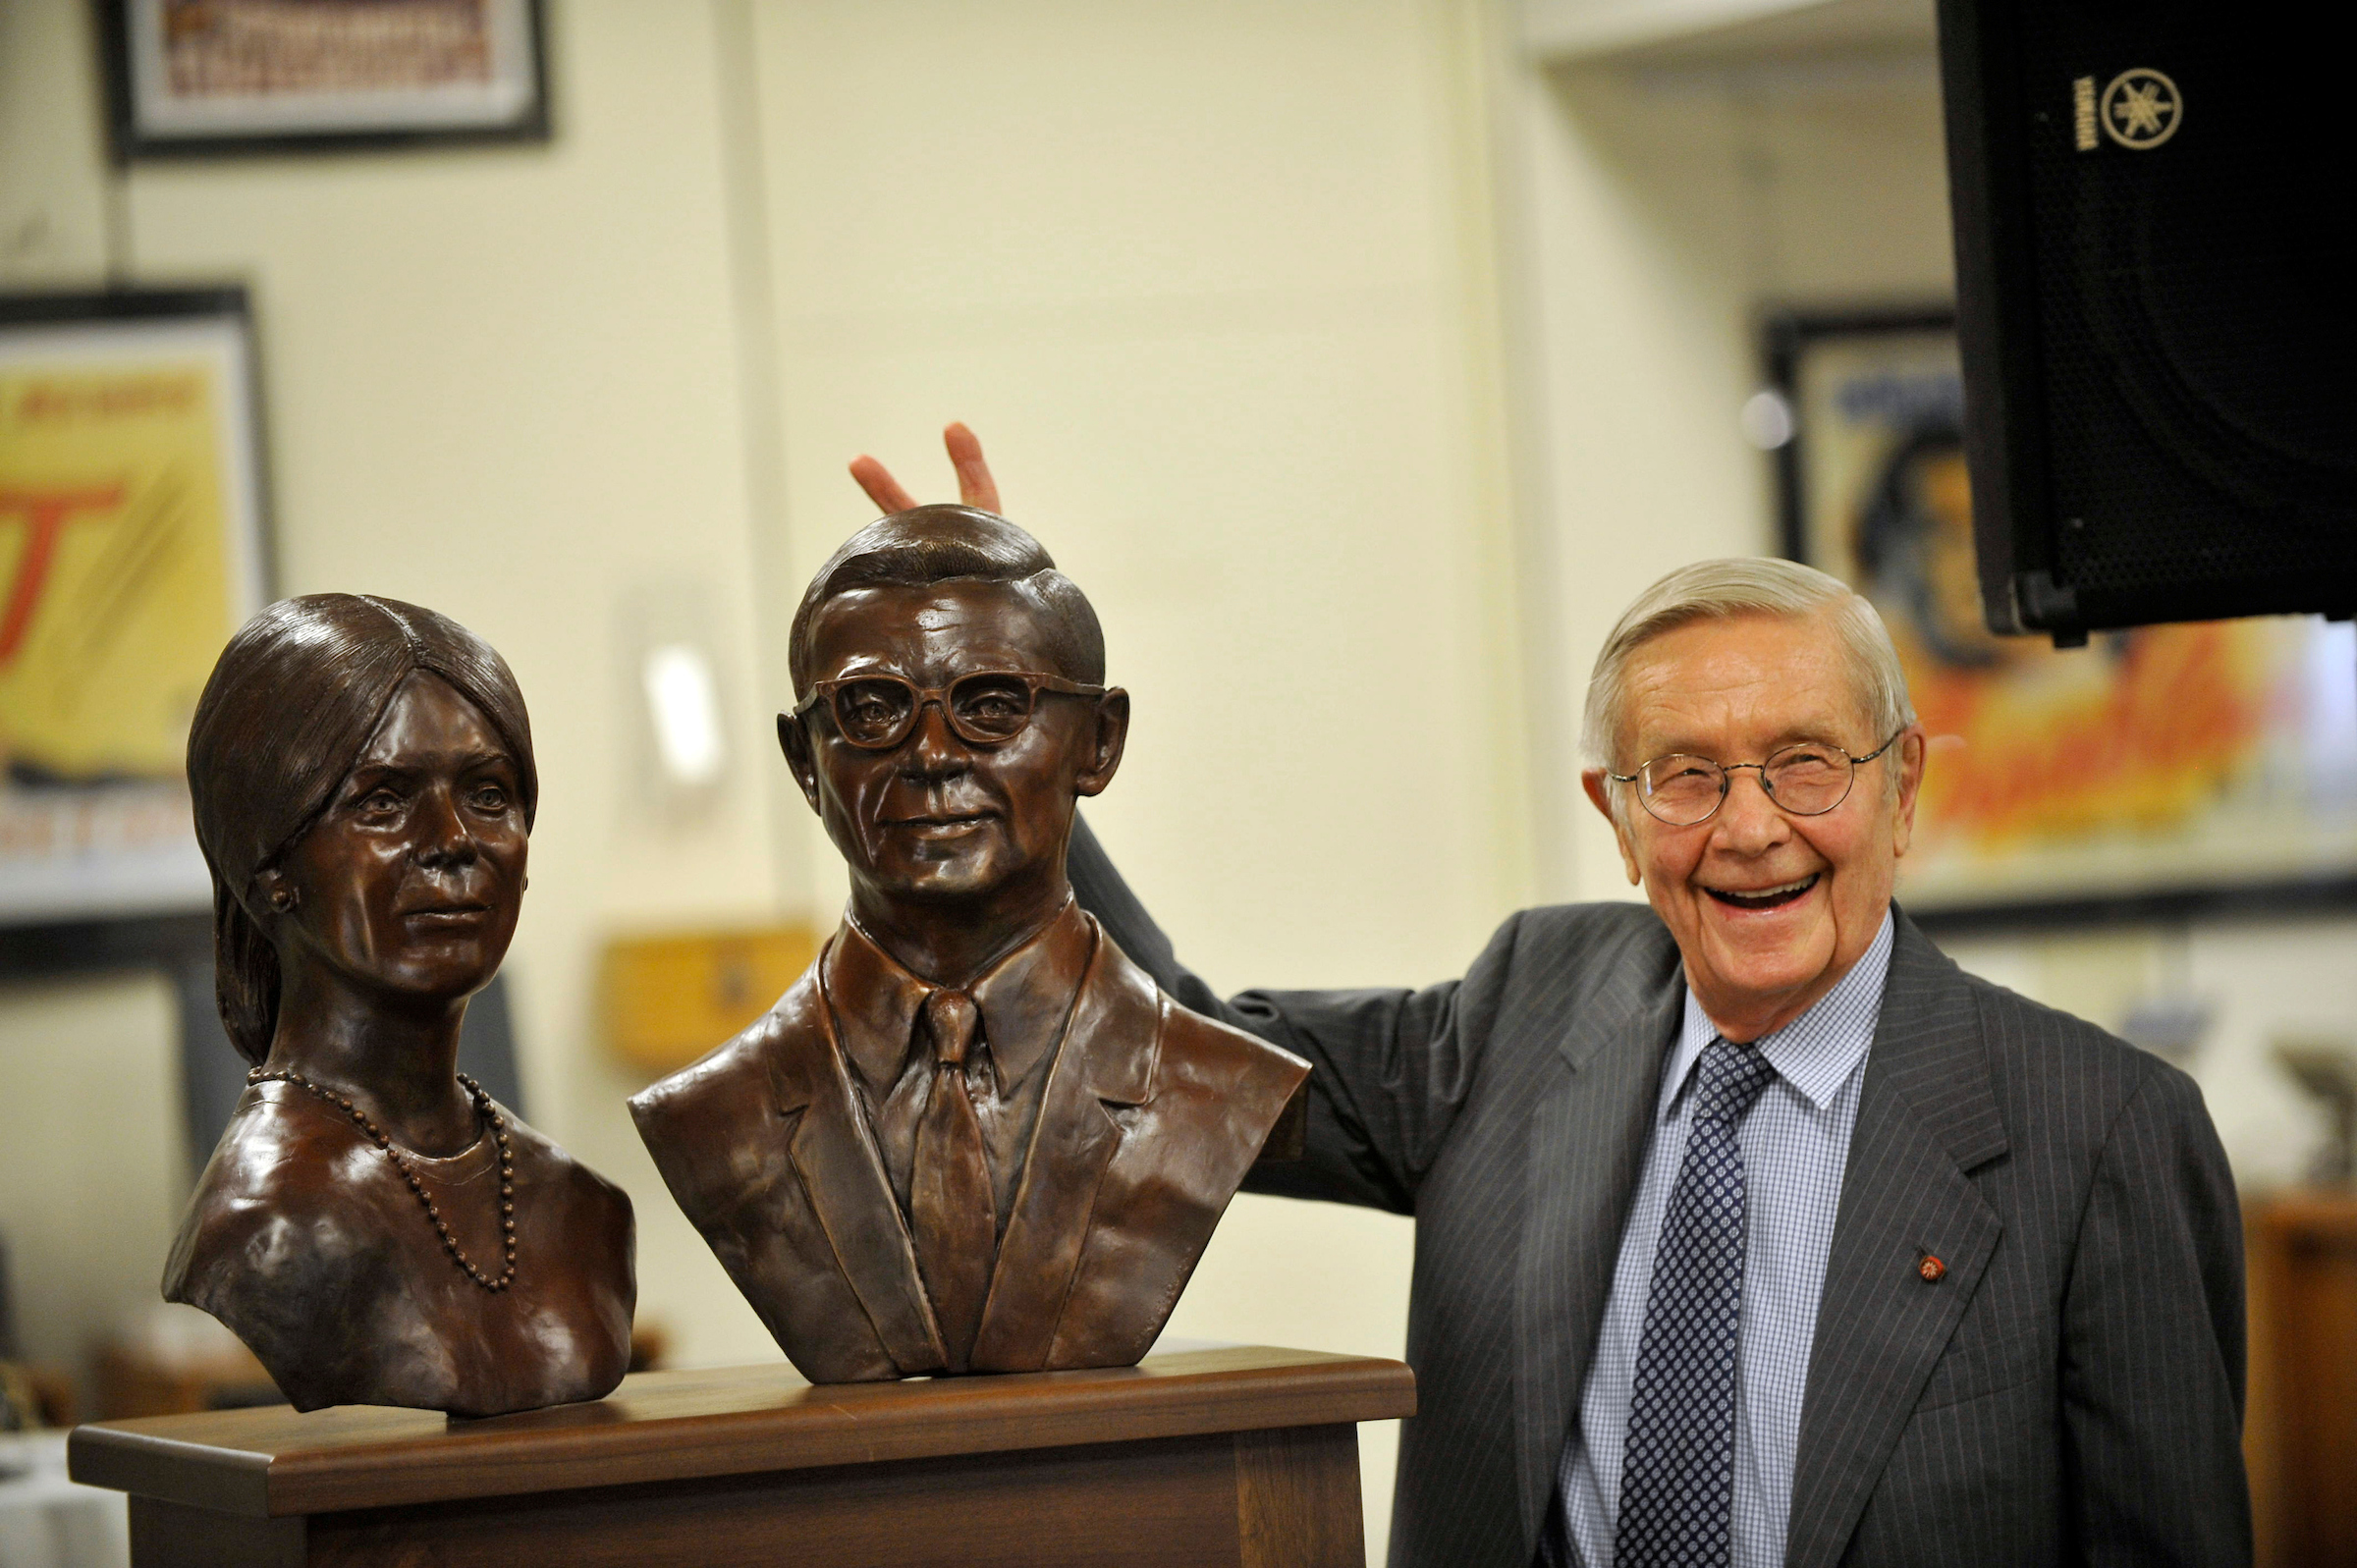 Dr. Alden Giving Bunny Ears to His Bust, Alden Library